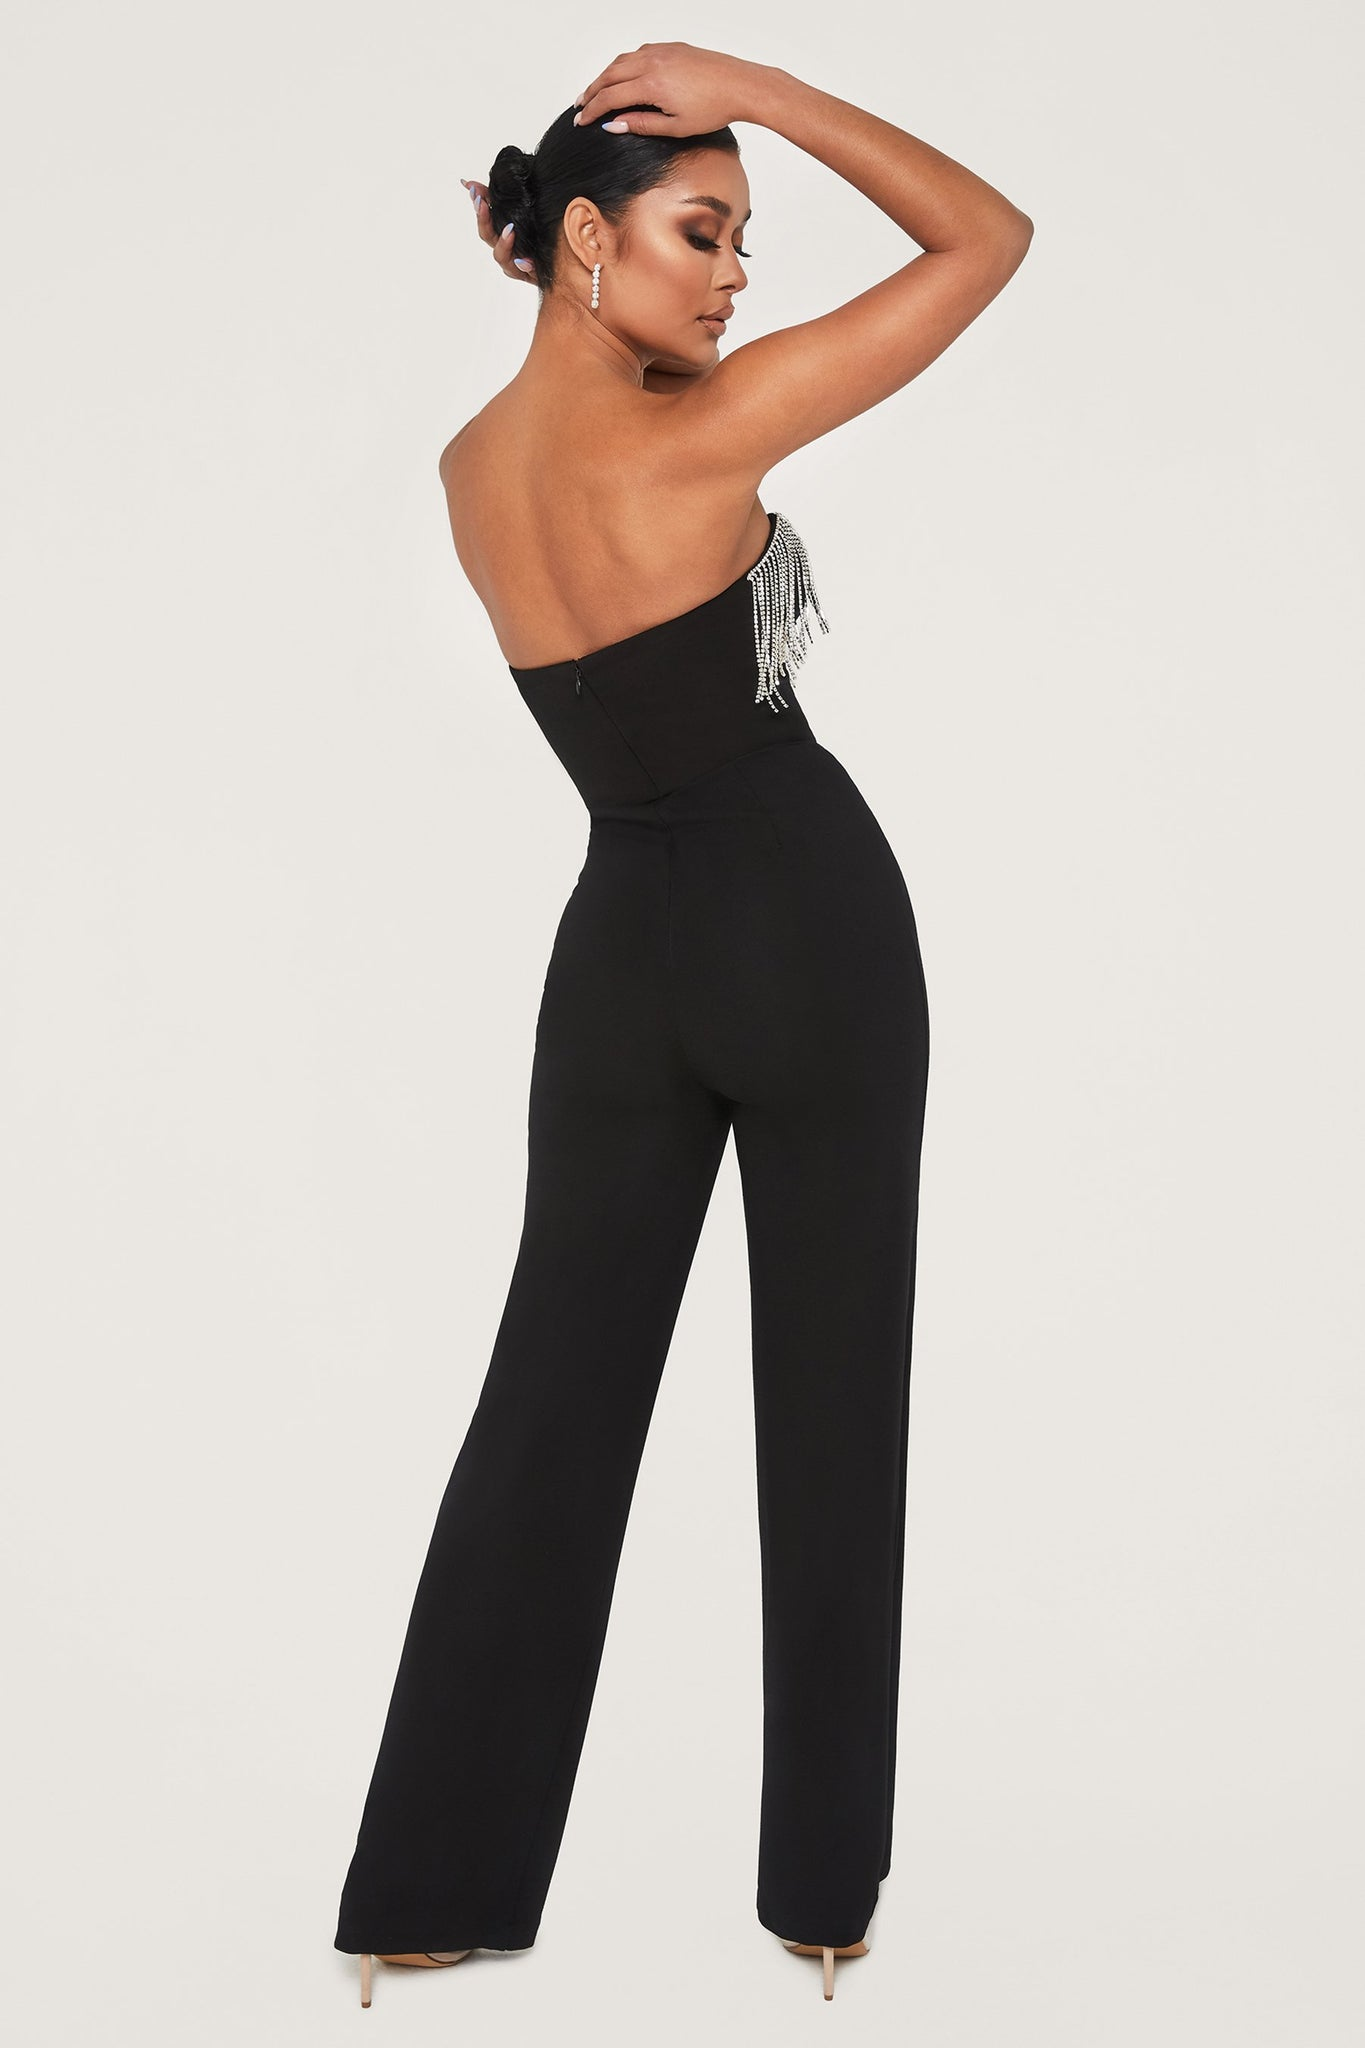 Bellia Diamante Fringe Strapless Jumpsuit - Black - MESHKI